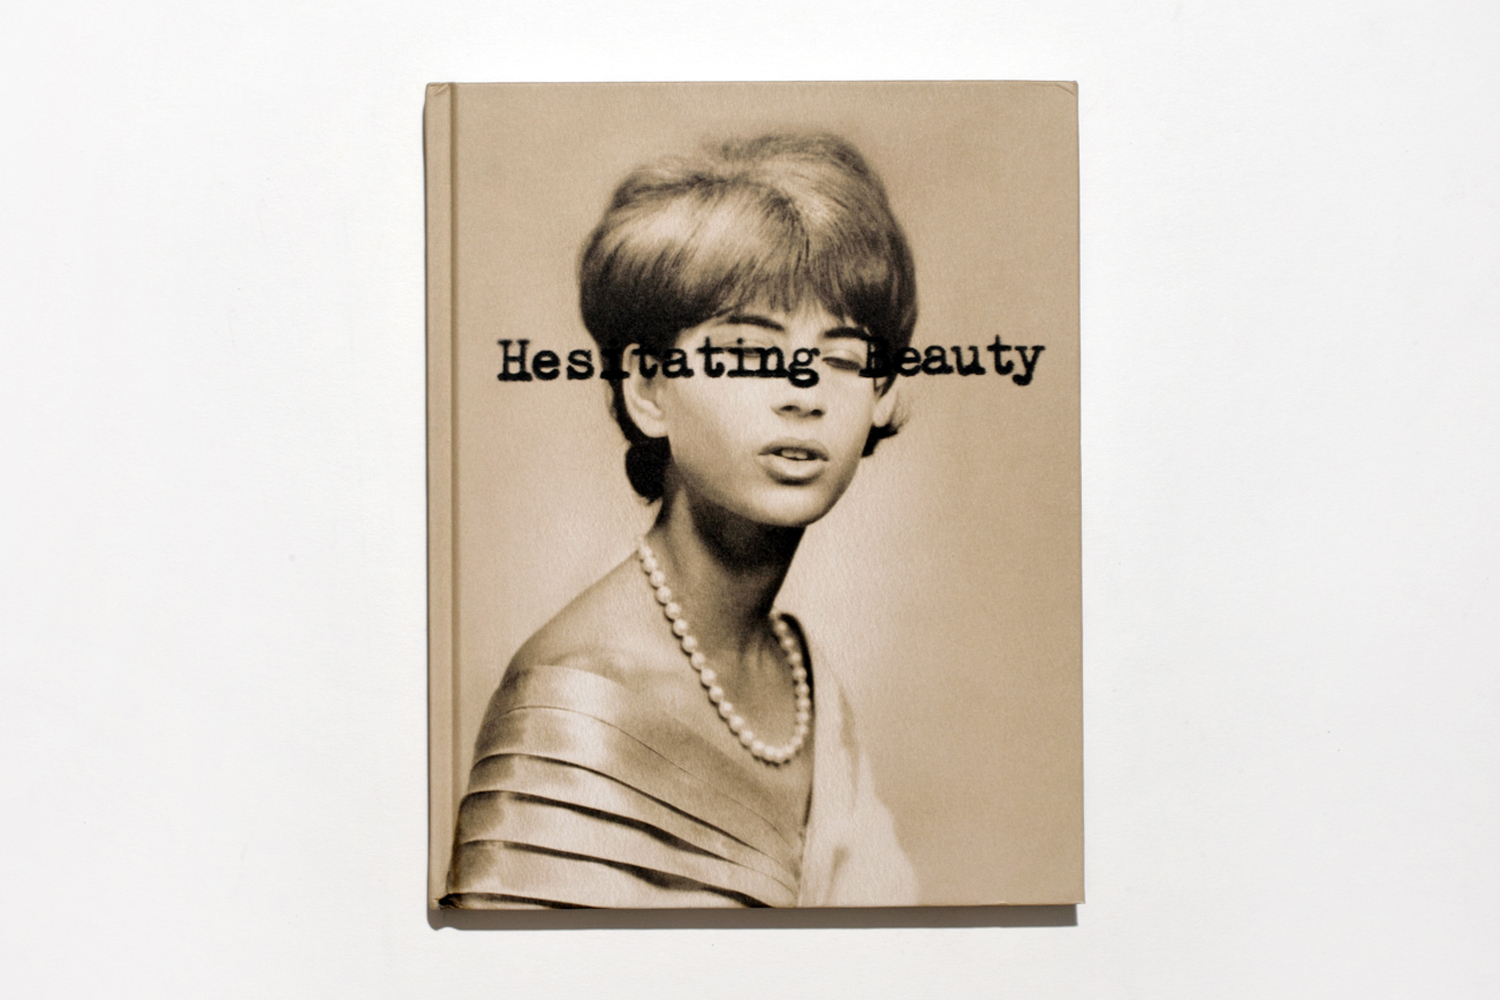 Hesitating Beauty by Joshua Lutz, published by Schilt Publishing, selected by Susan Bright, writer and curator of photography, author of Home Truths: Photography and Motherhood.